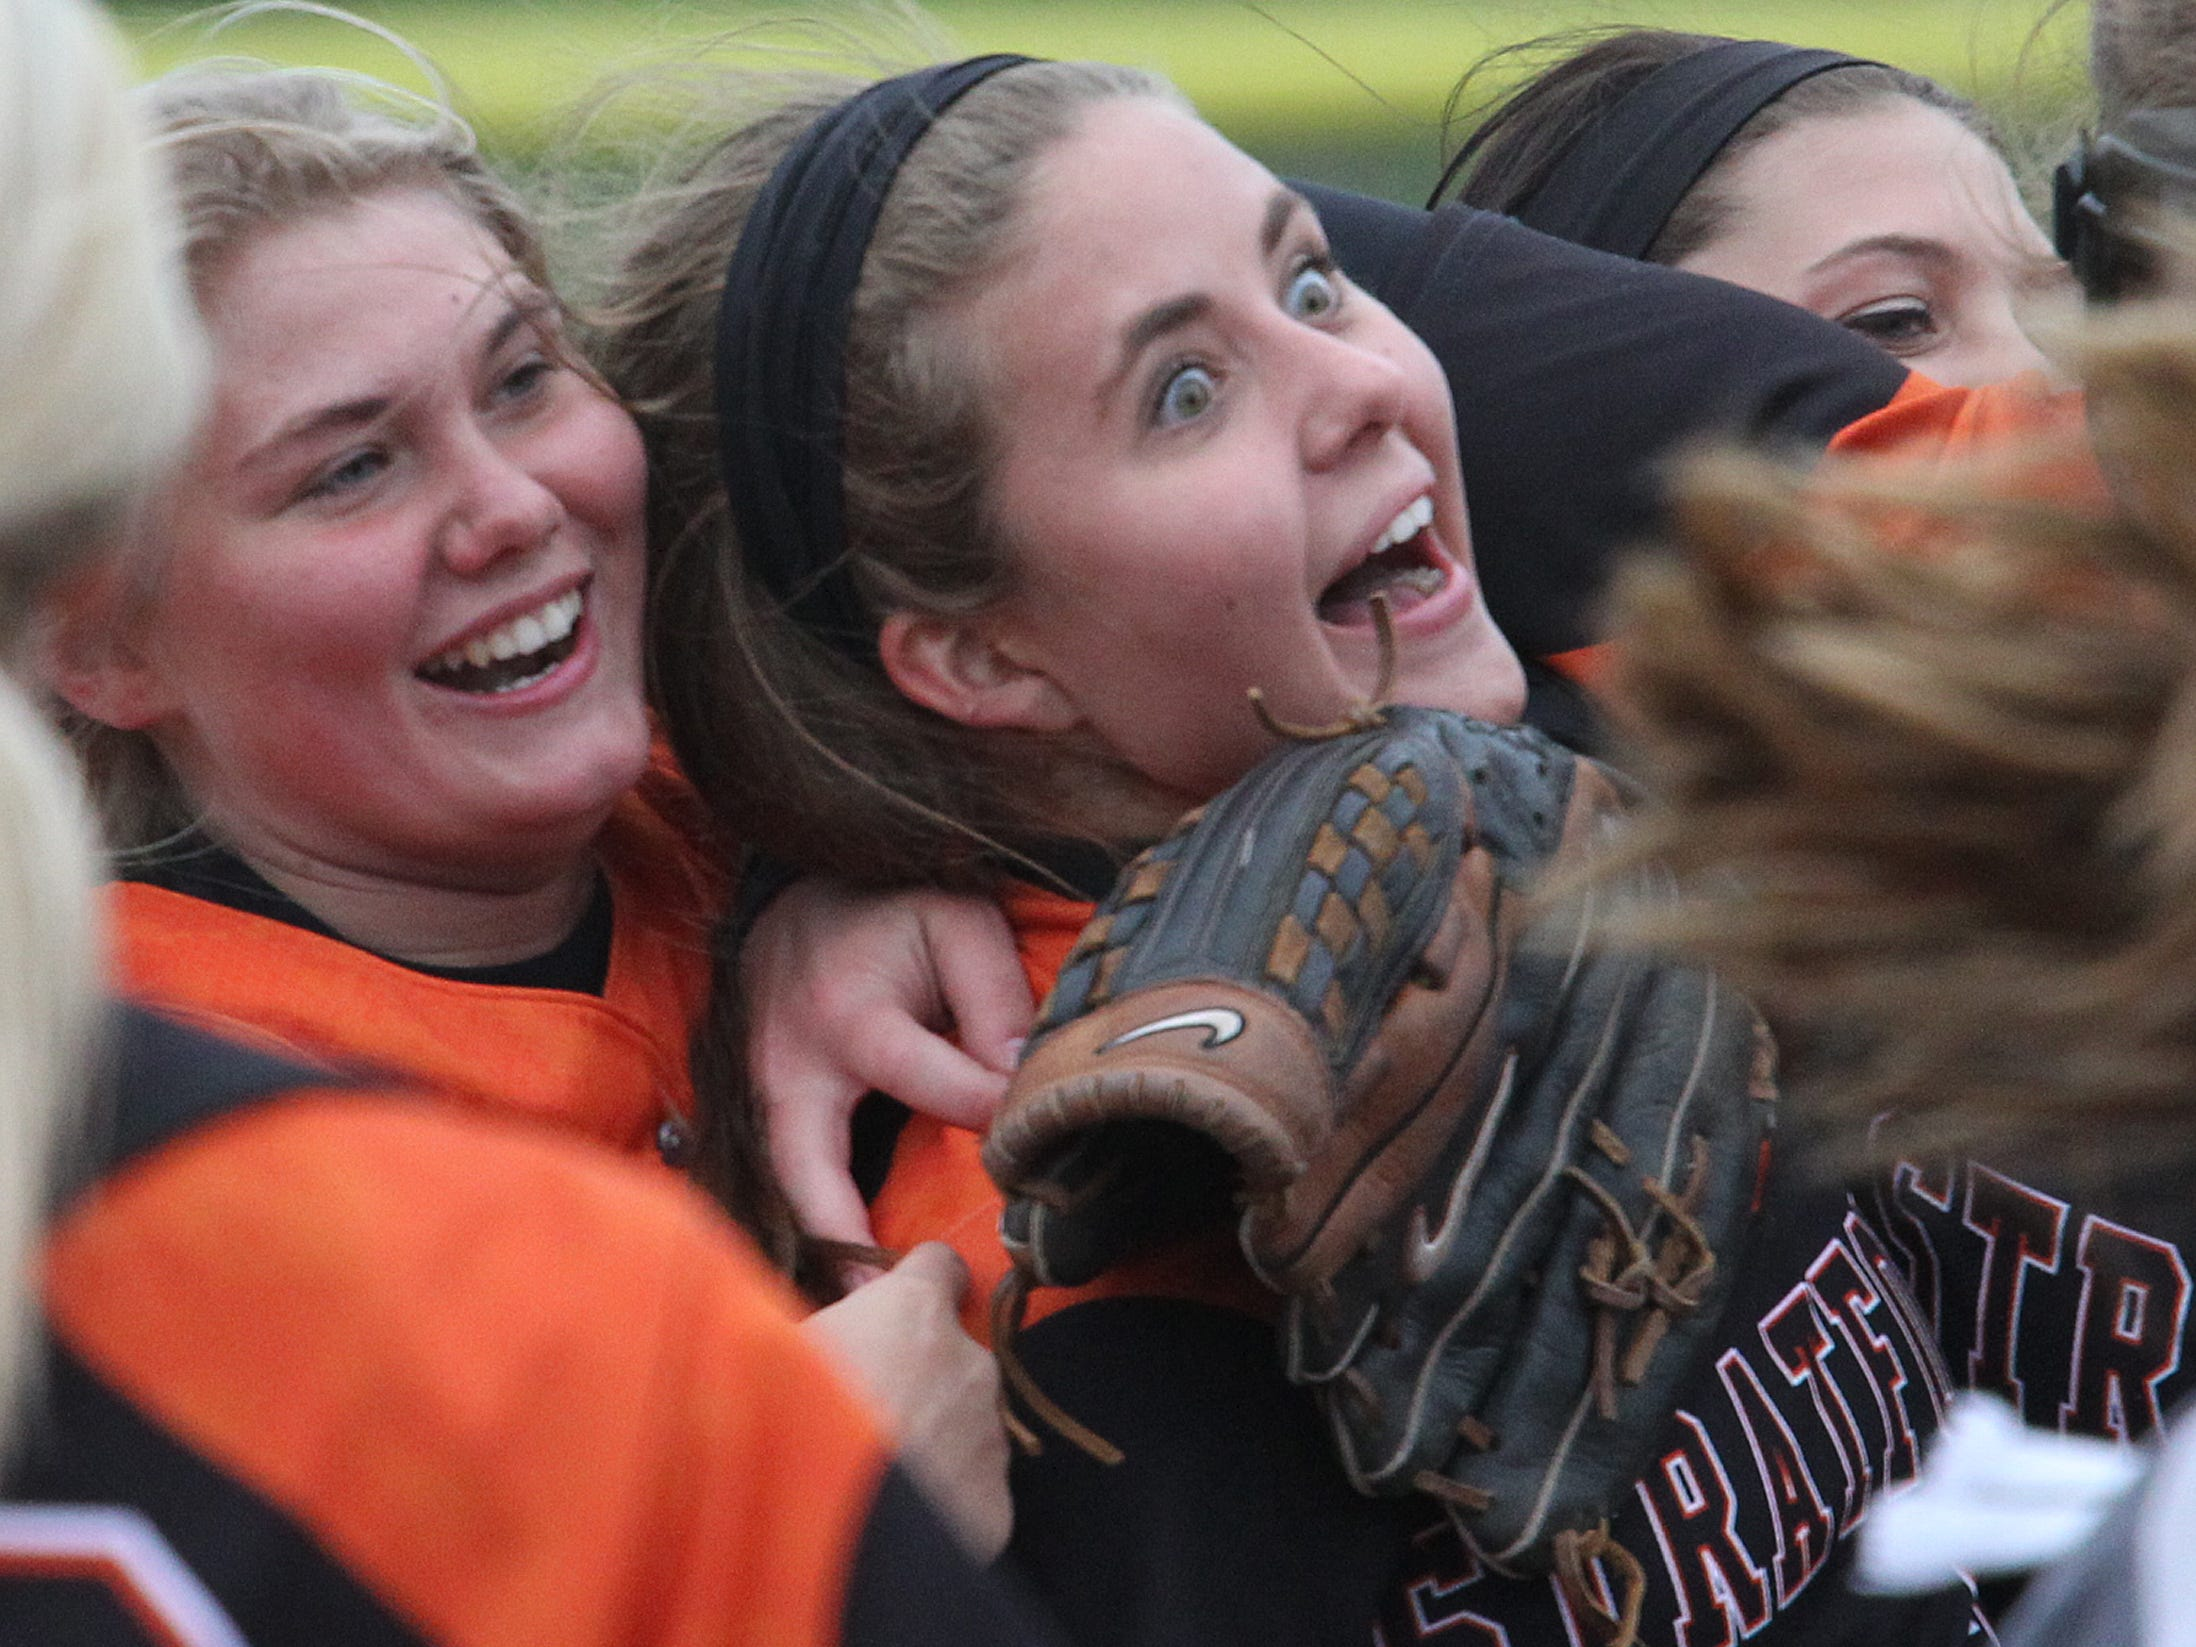 Stratford's Dallas Adams, left, and Casey Kolbeck celebrate Monday as the Tigers beat Marathon in Stratford to claim a tie for the Marawood Conference South title with Marathon.